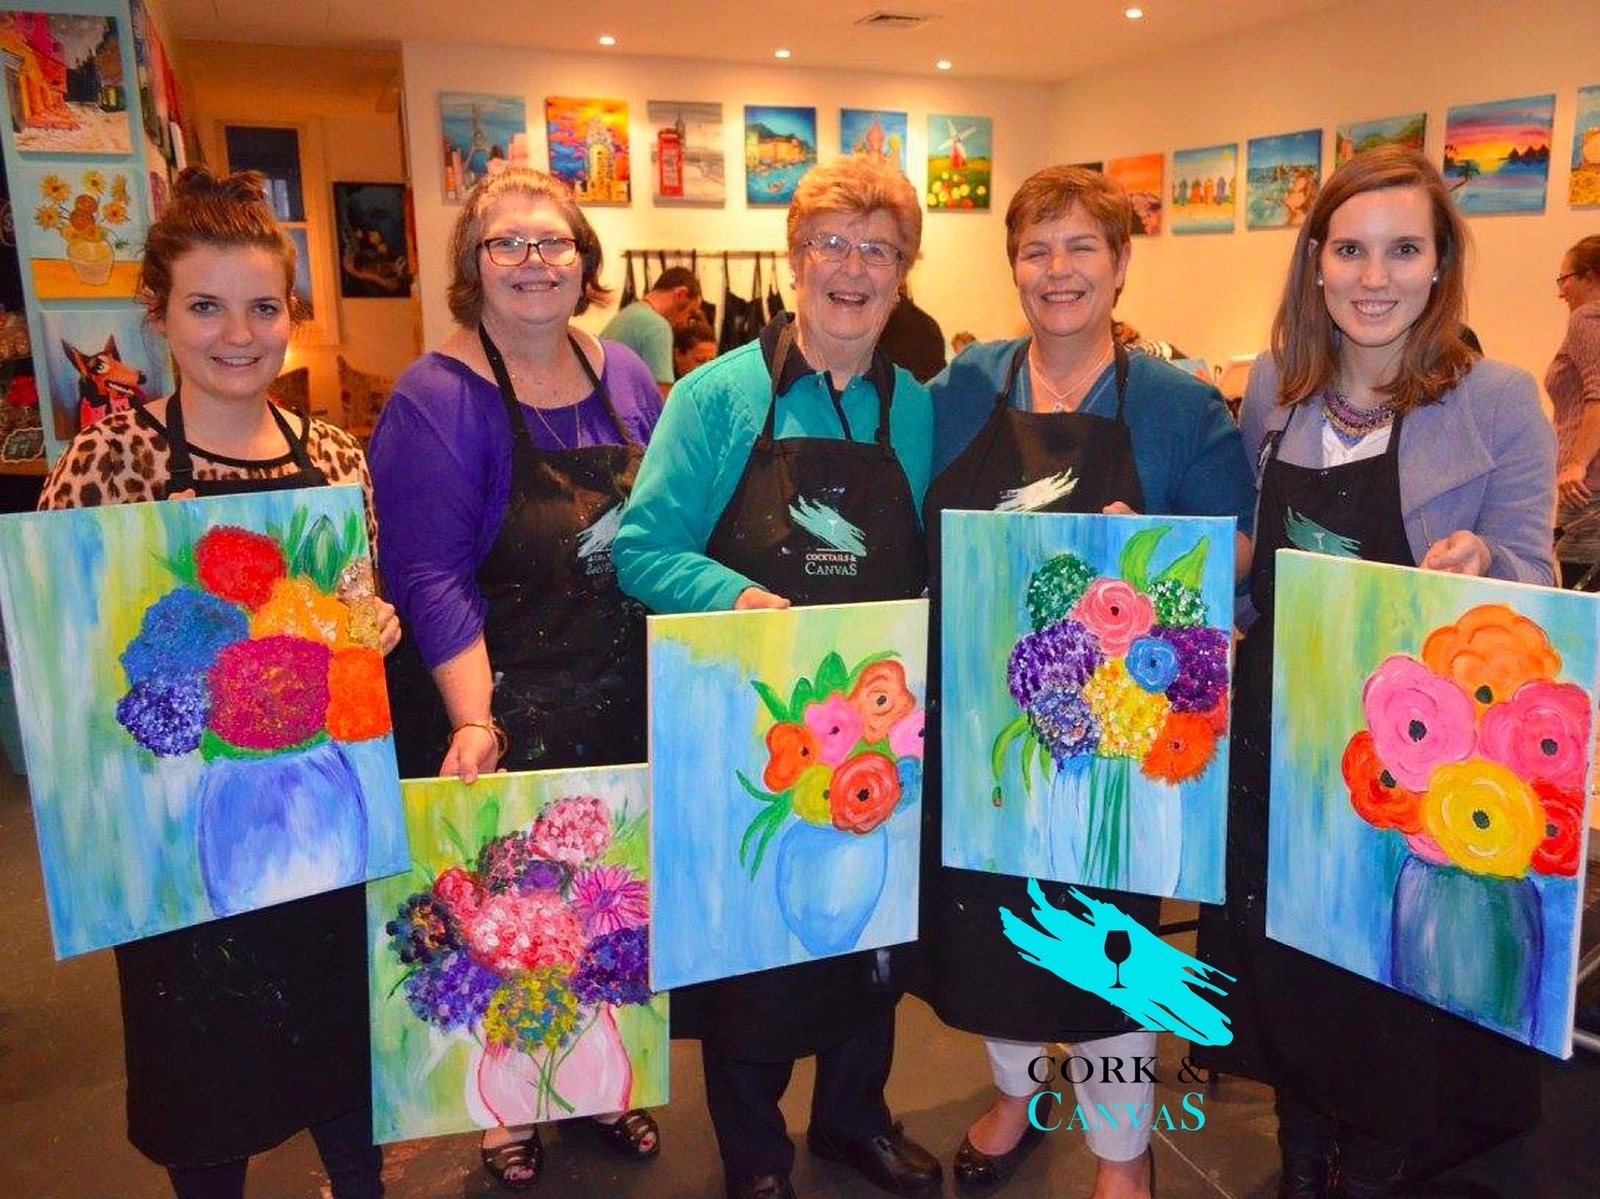 Mothers day paint and sip event